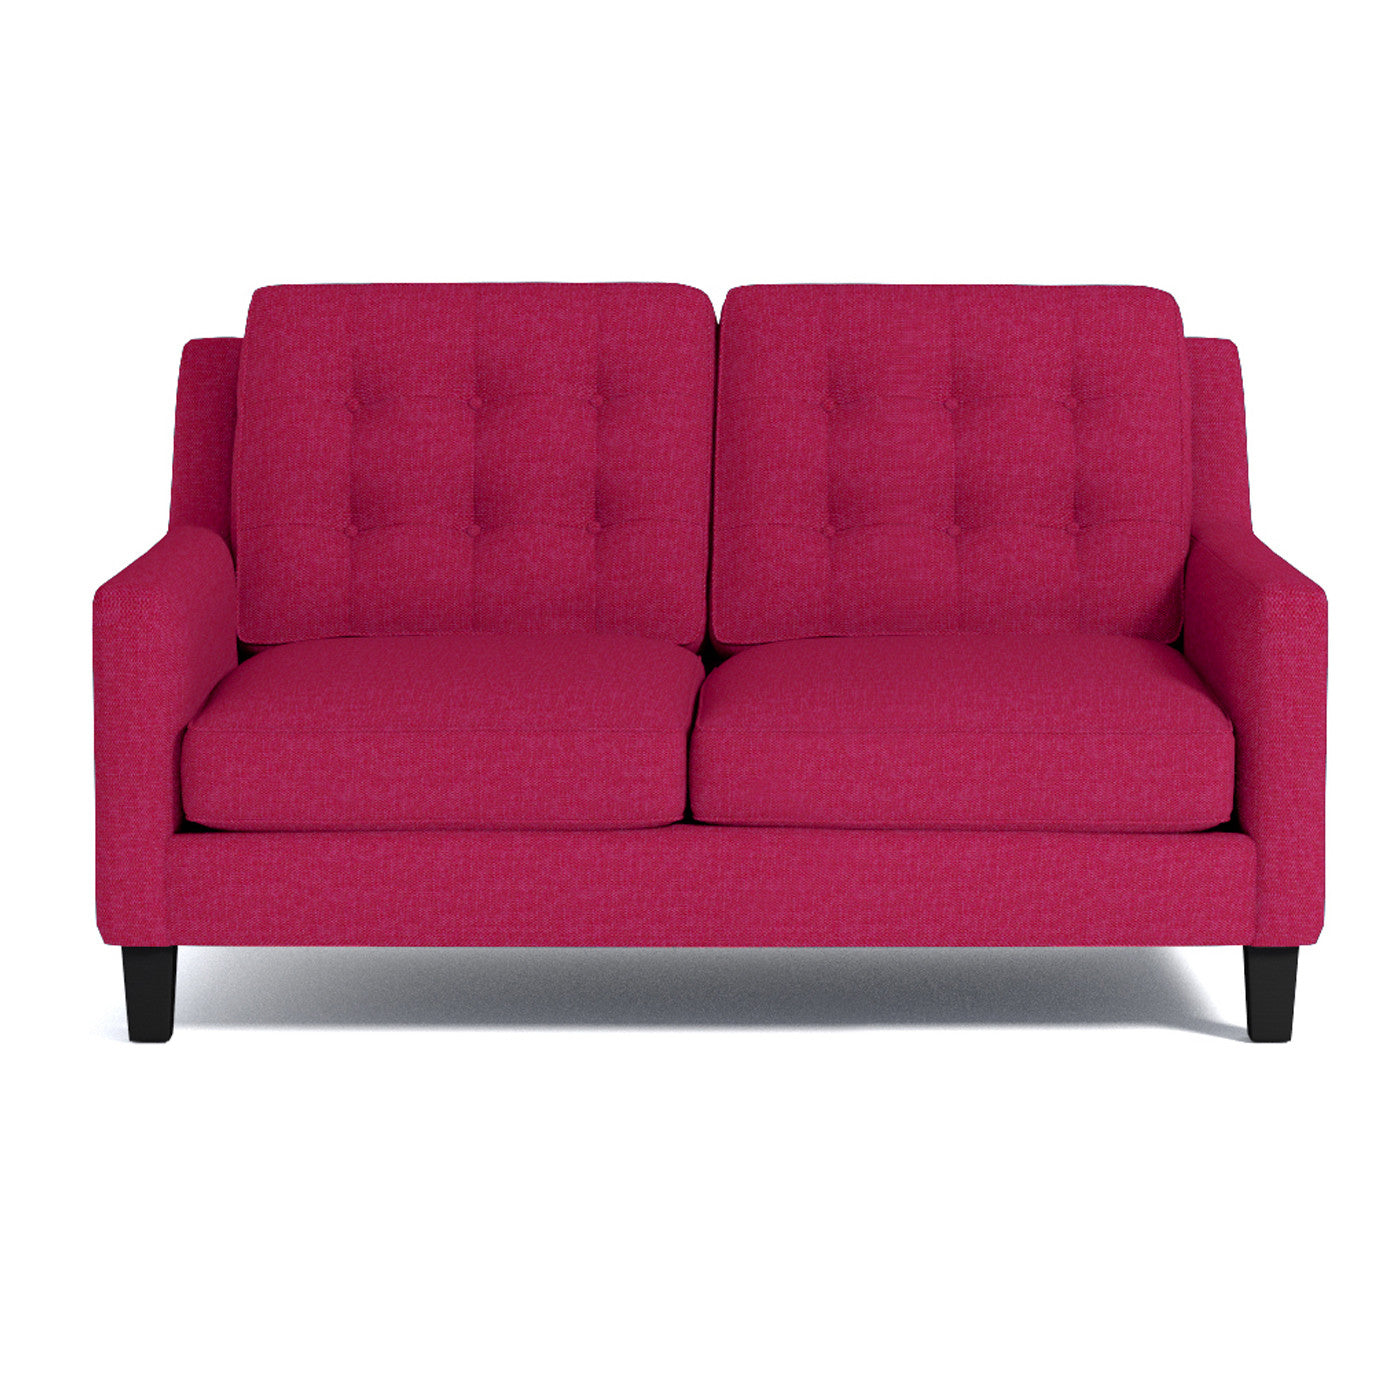 Elysian Apartment Size Sofa Choice of Fabrics Apt2B